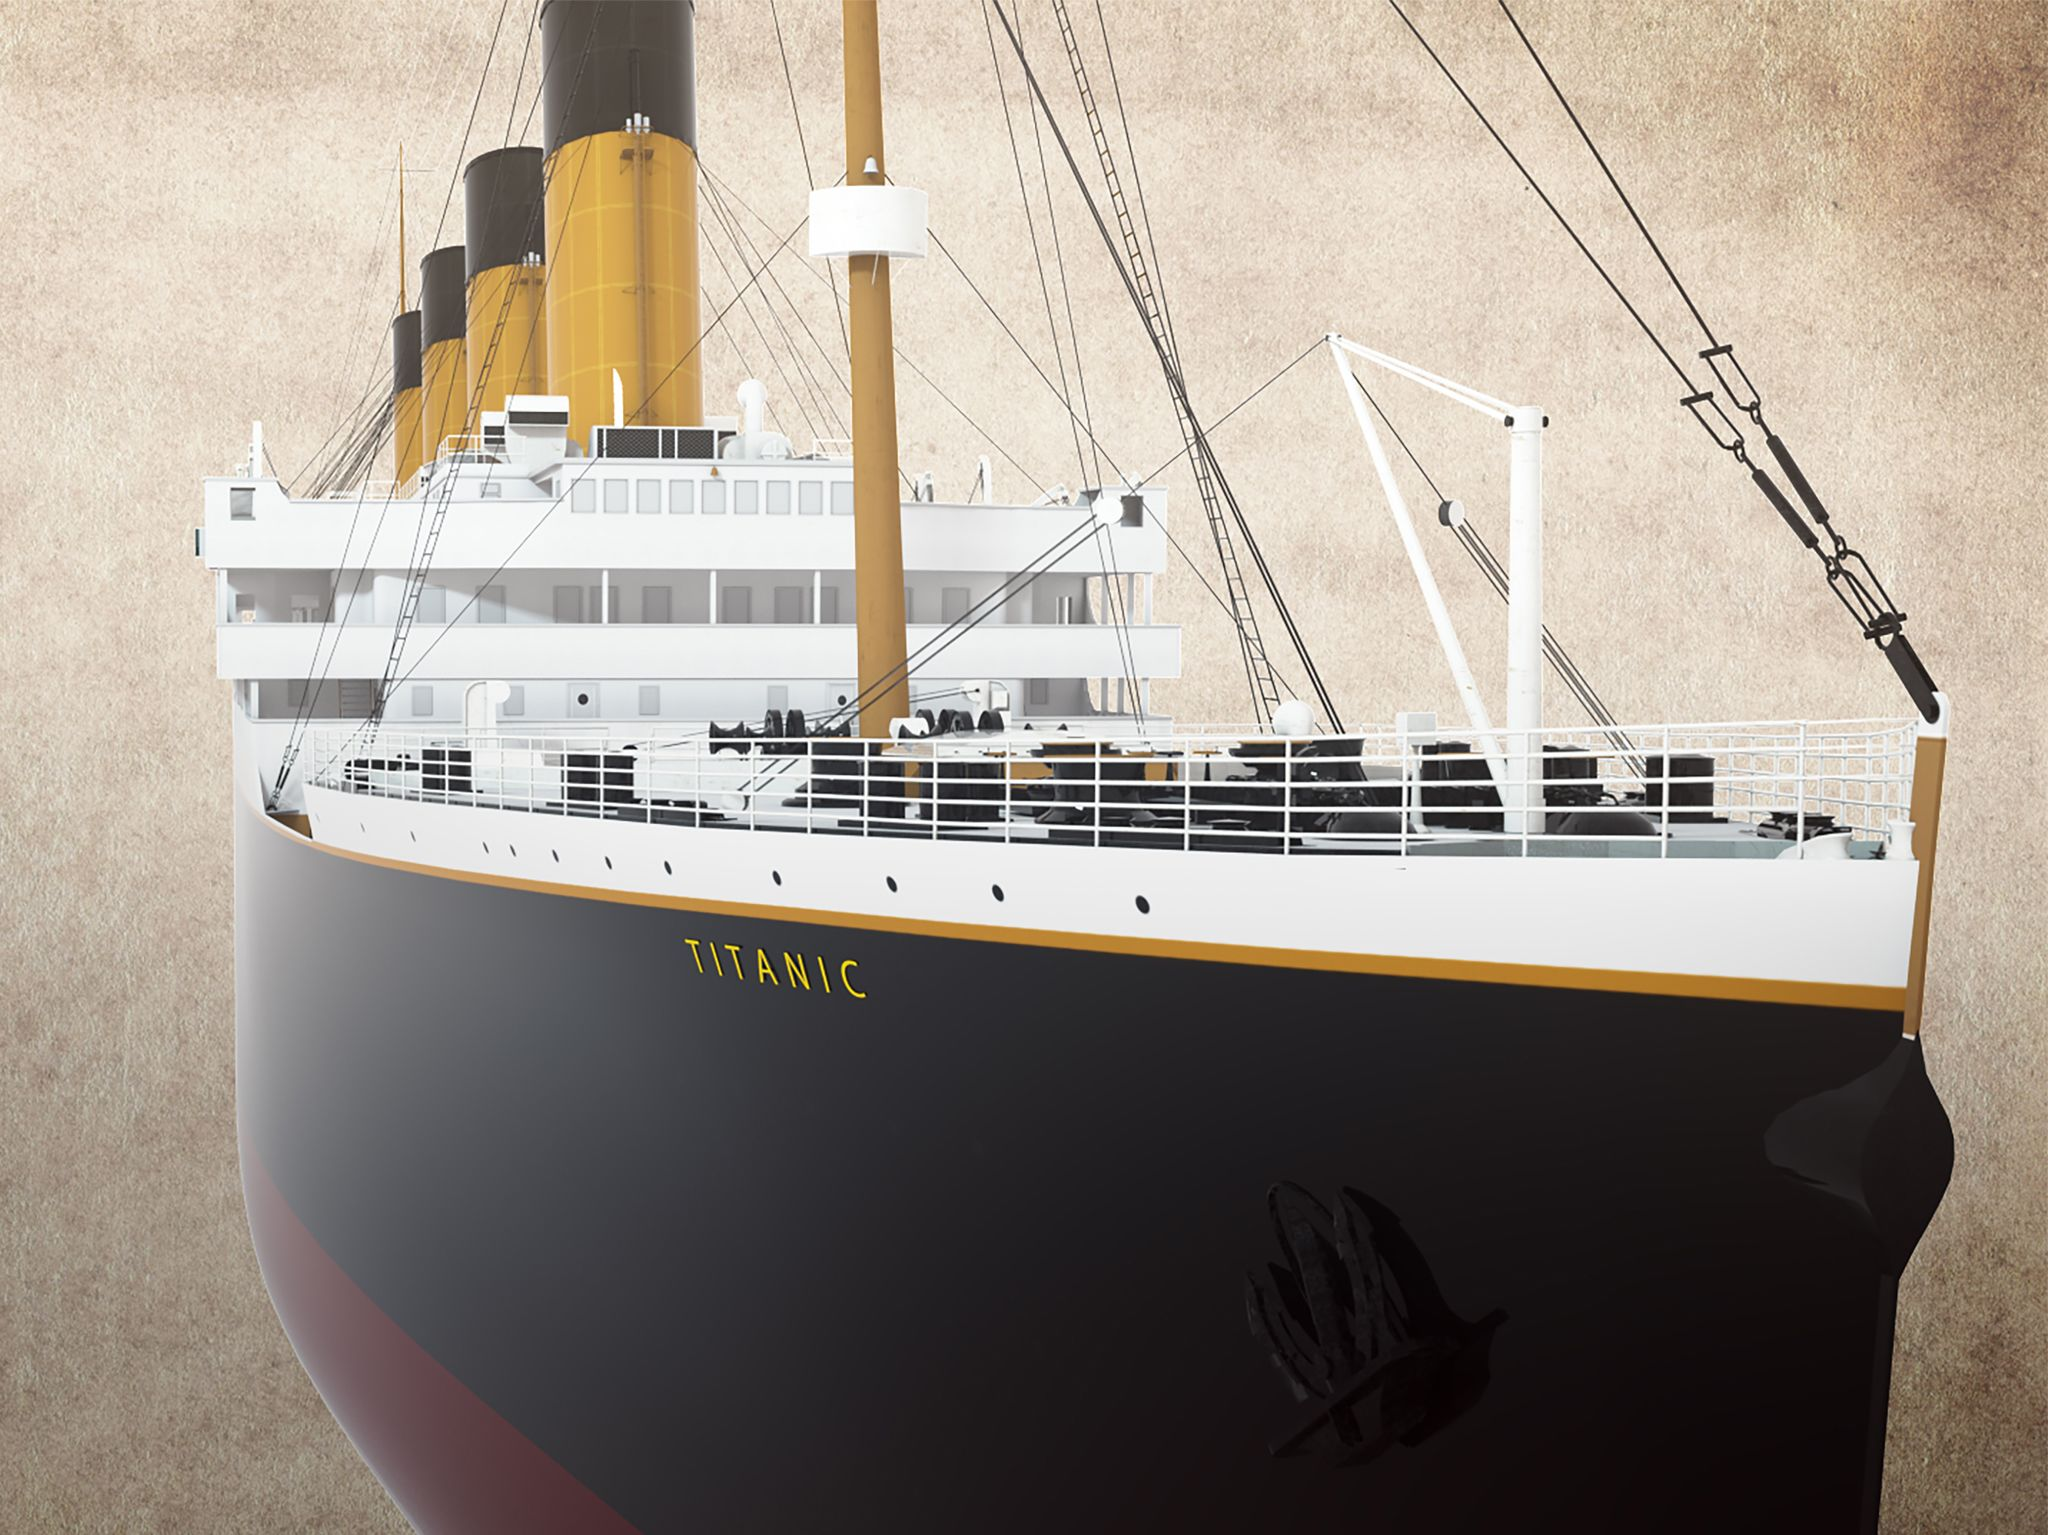 Model of the titanic. This image is from Back to the Titanic. [Photo of the day - April 2020]